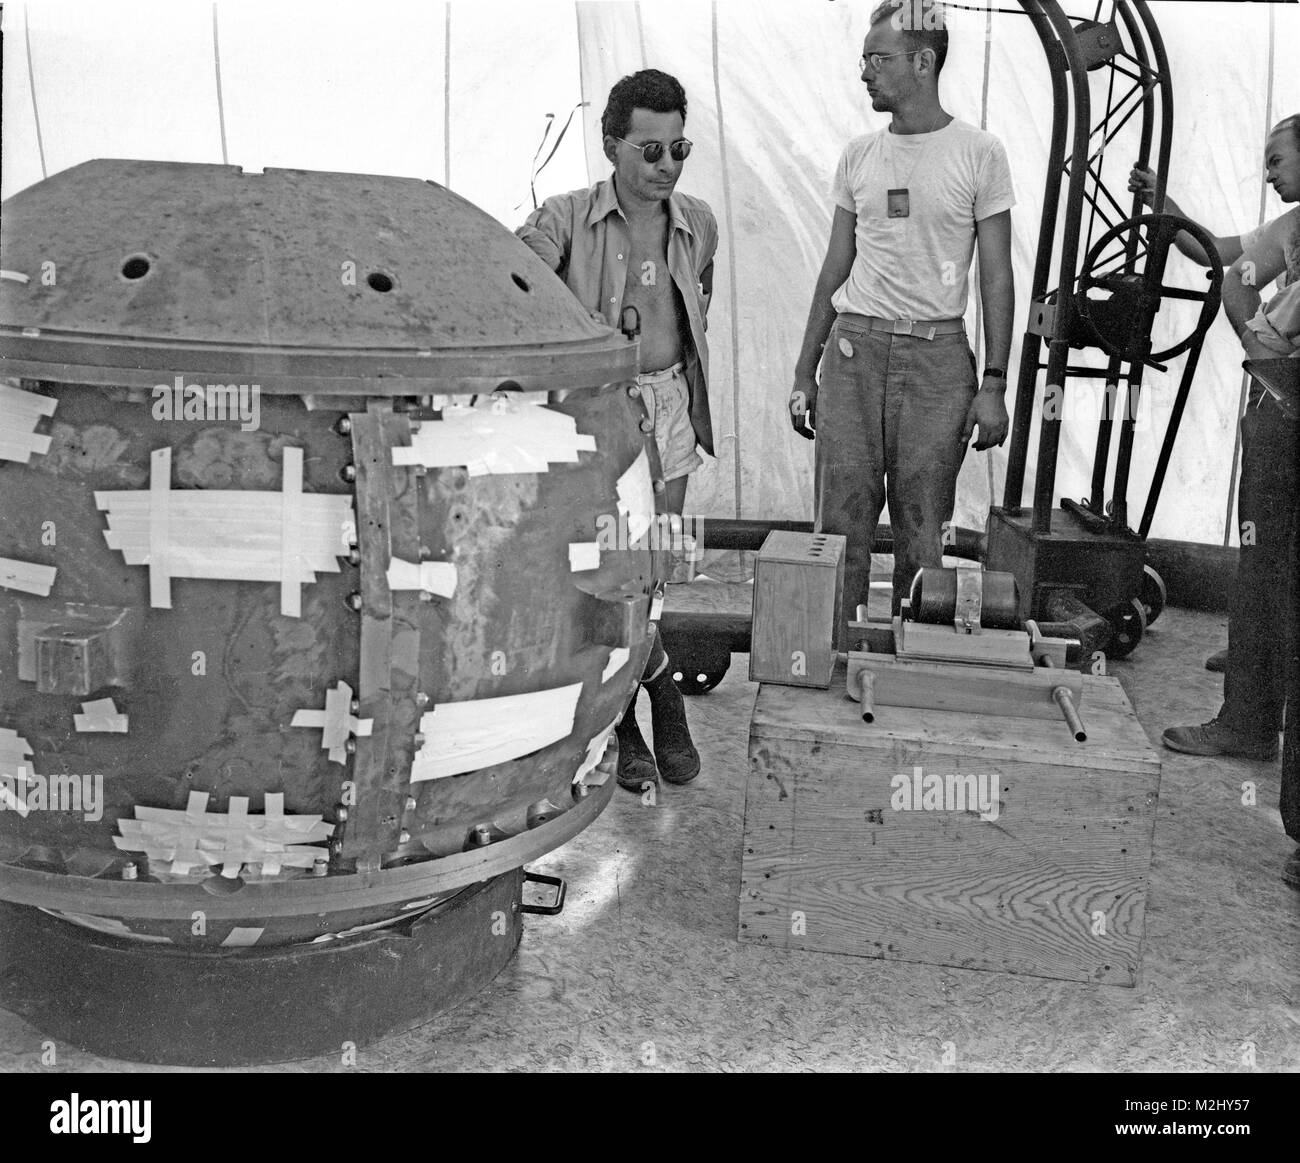 Trinity Test Site, Louis Slotin at Test Tower, 1945 Stock Photo